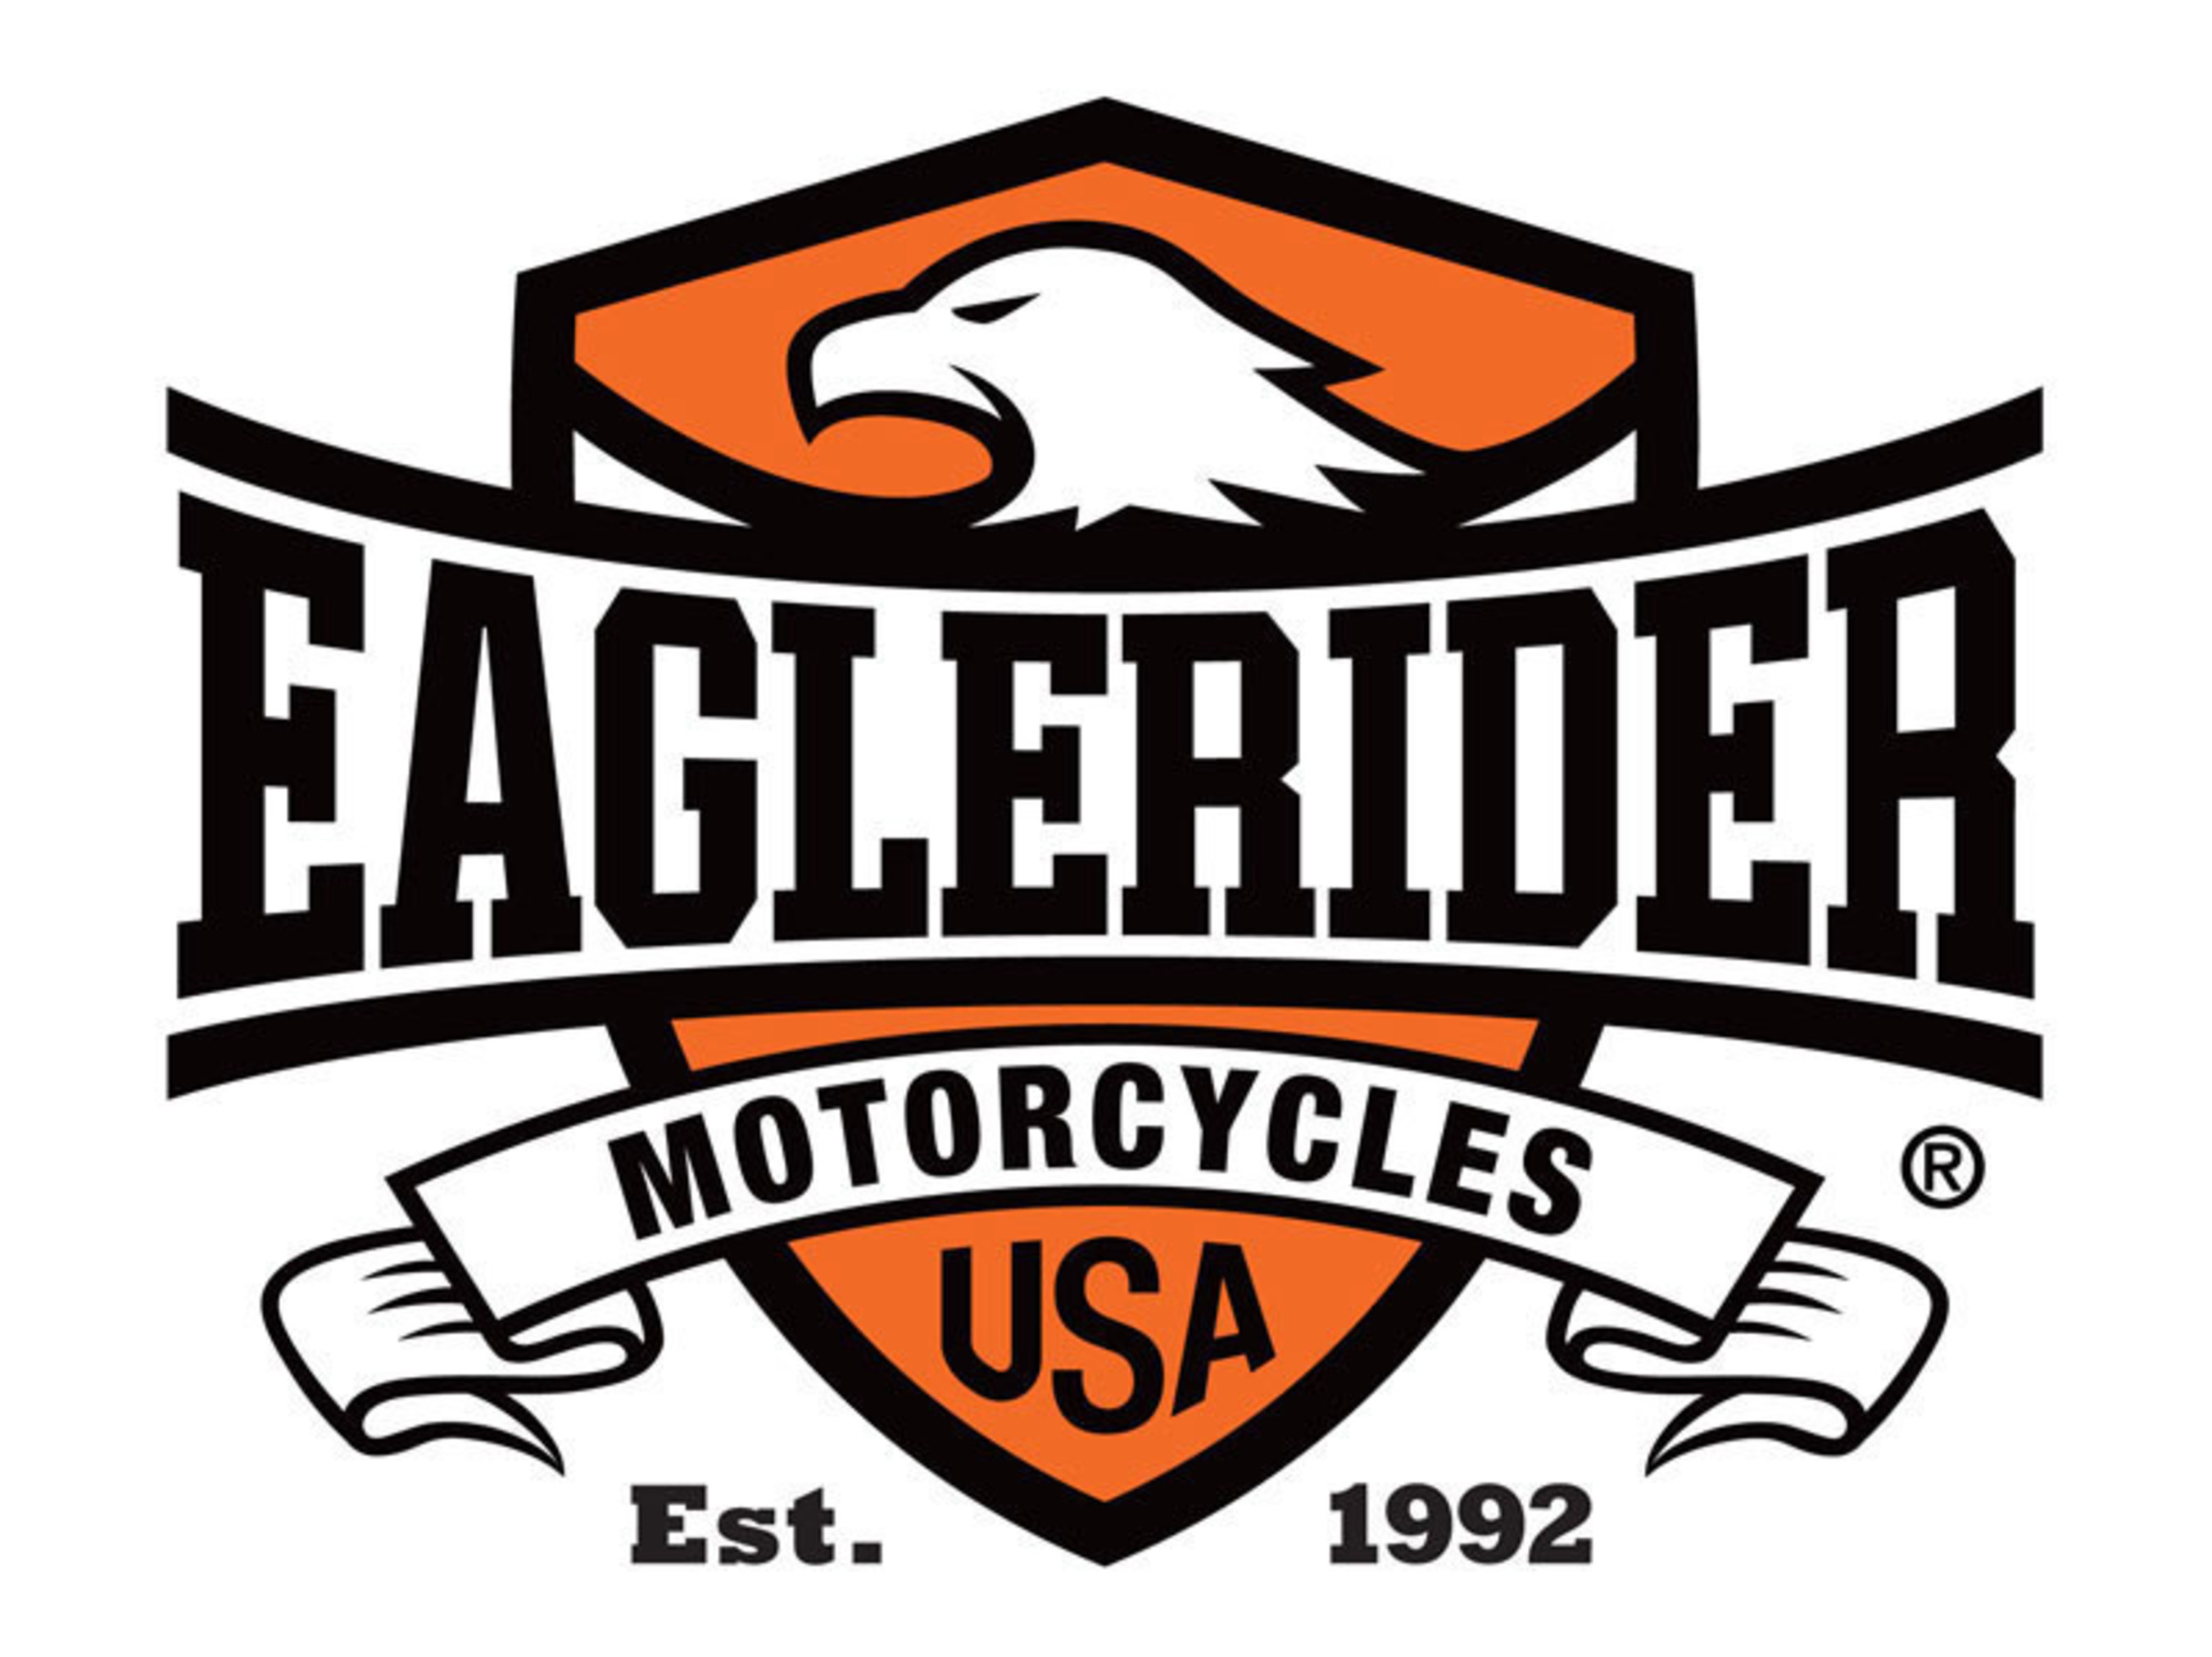 EagleRider's 2016 Annual Convention: A Gathering of Motorcycle Industry Icons, Innovations, and